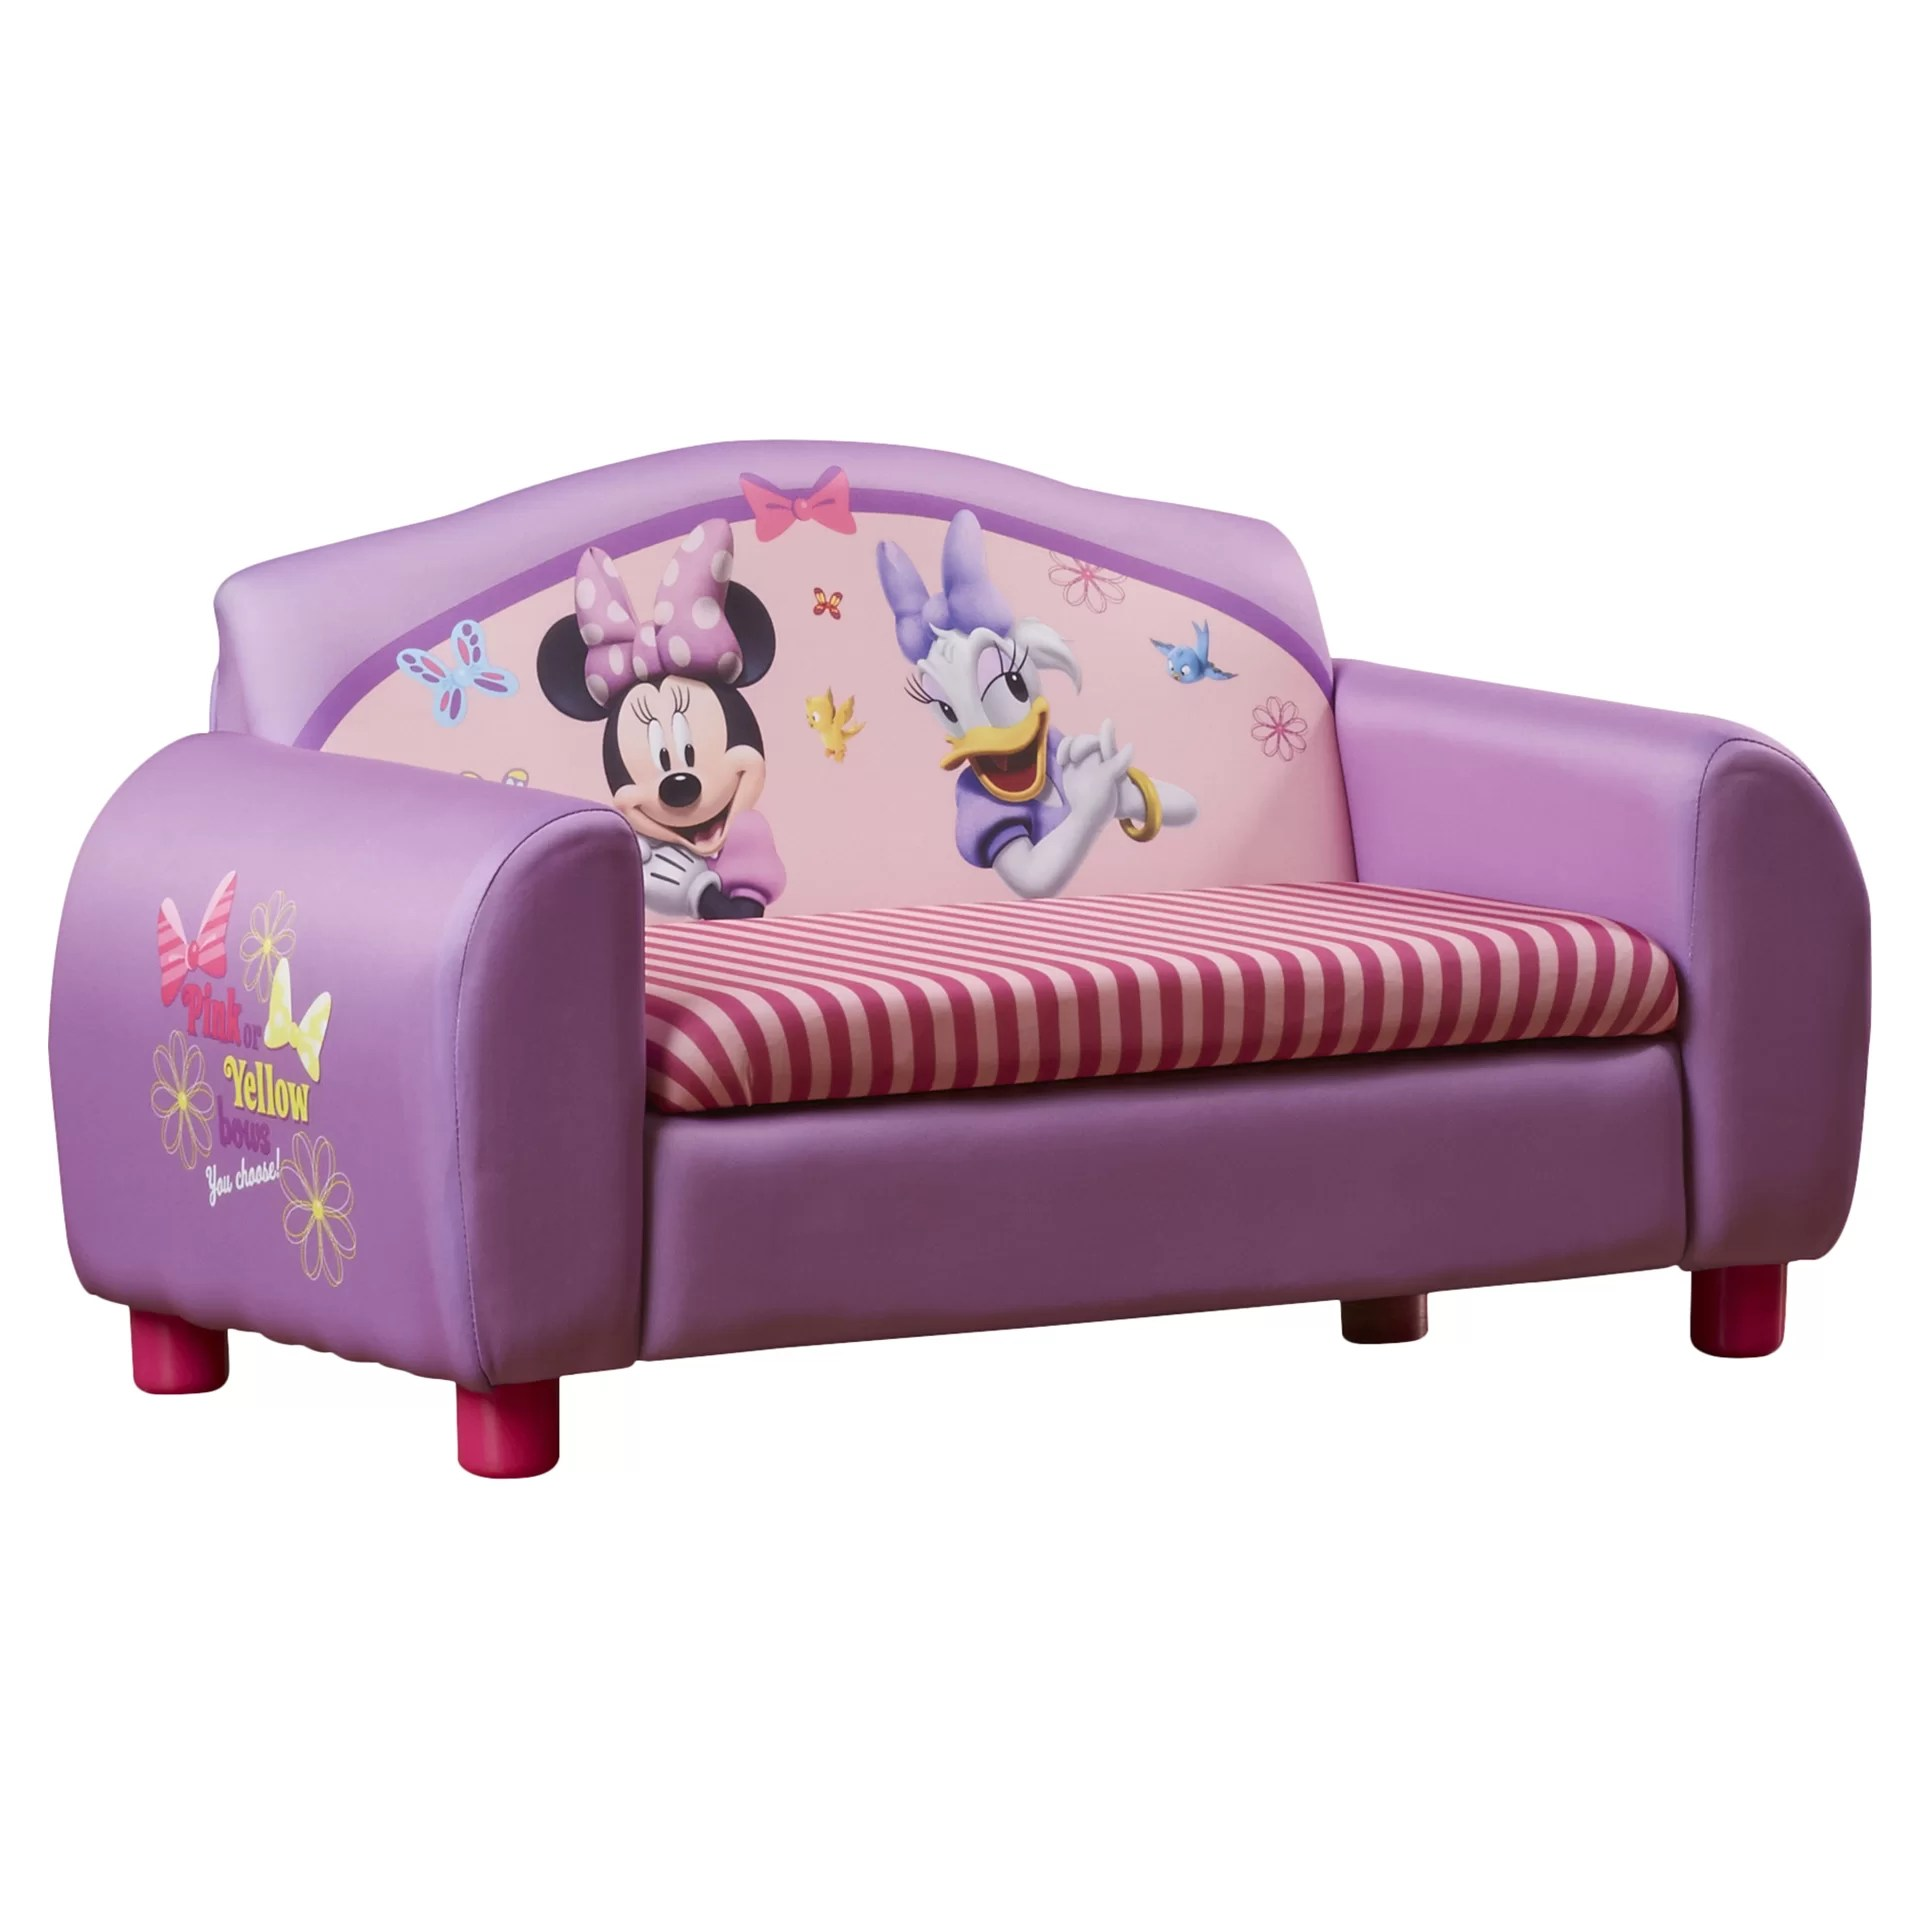 delta storage sofa bed indonesian sets children disney minnie mouse kids with